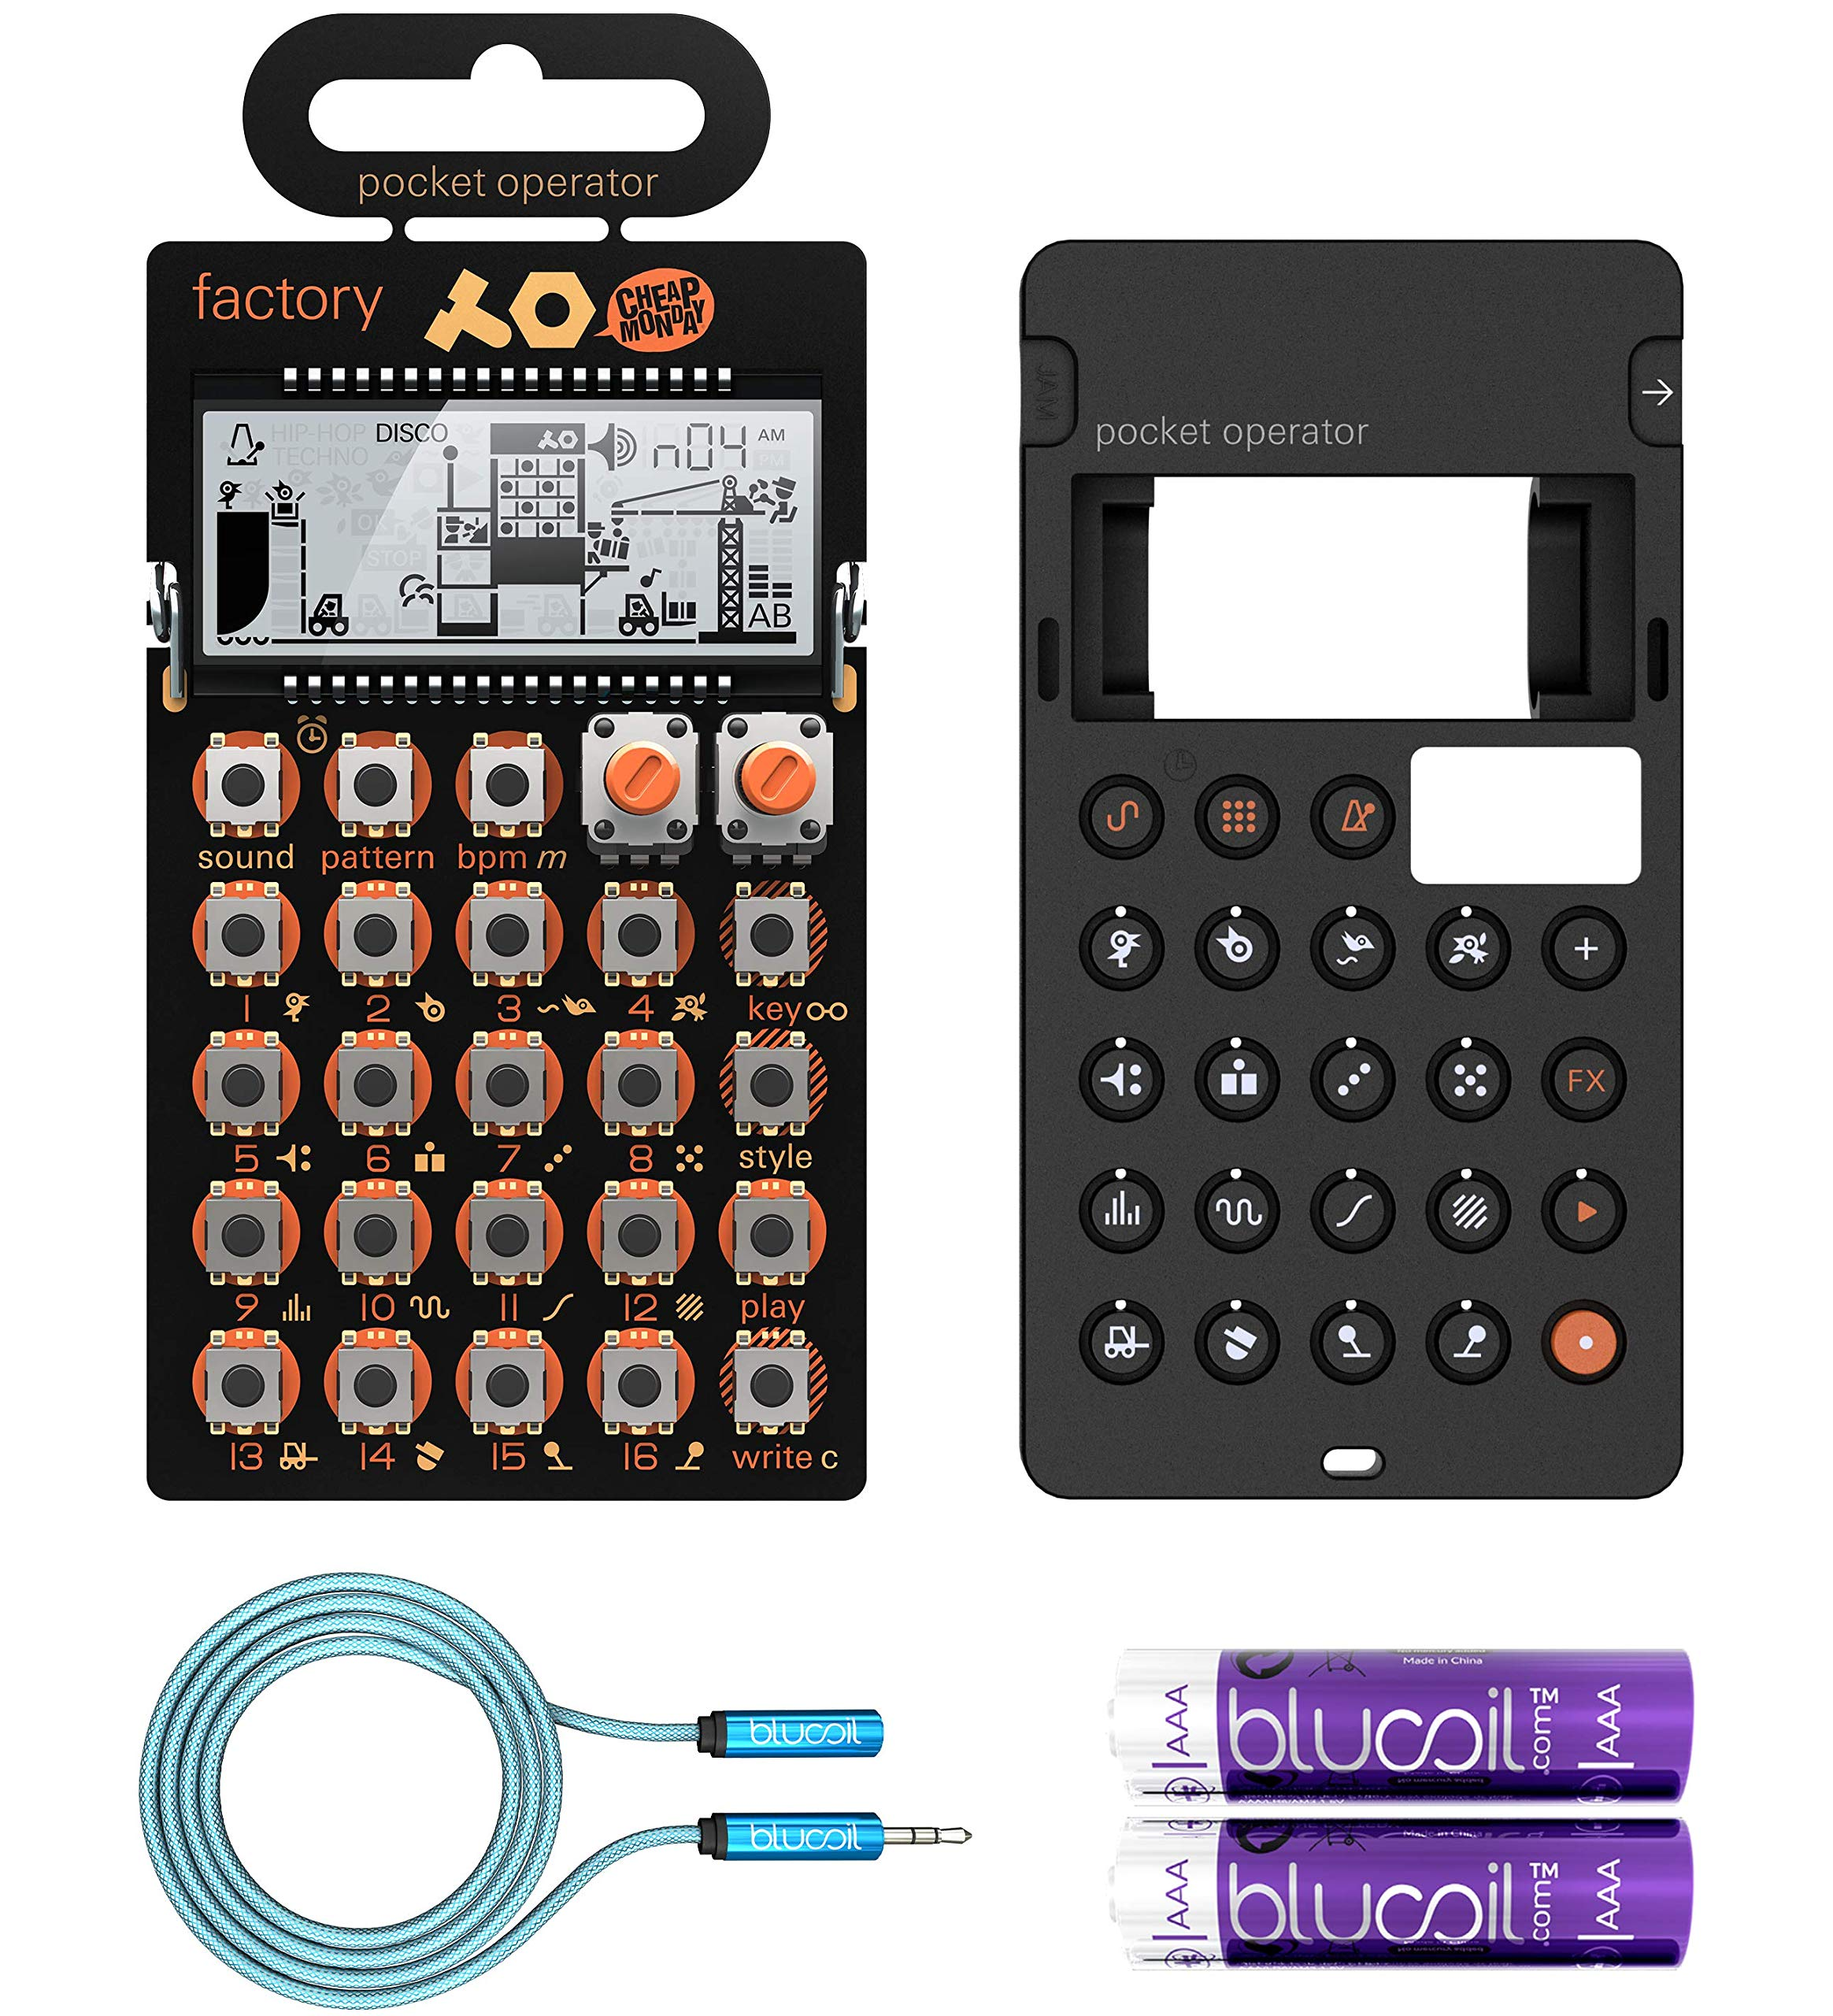 Teenage Engineering PO-16 Factory Pocket Operator, Sounds, Patterns & Effects Synthesizer & Sequencer Bundle with CA-16 Silicone Case, Blucoil 6-FT Headphone Extension Cable (3.5mm) & 2 AAA Batteries